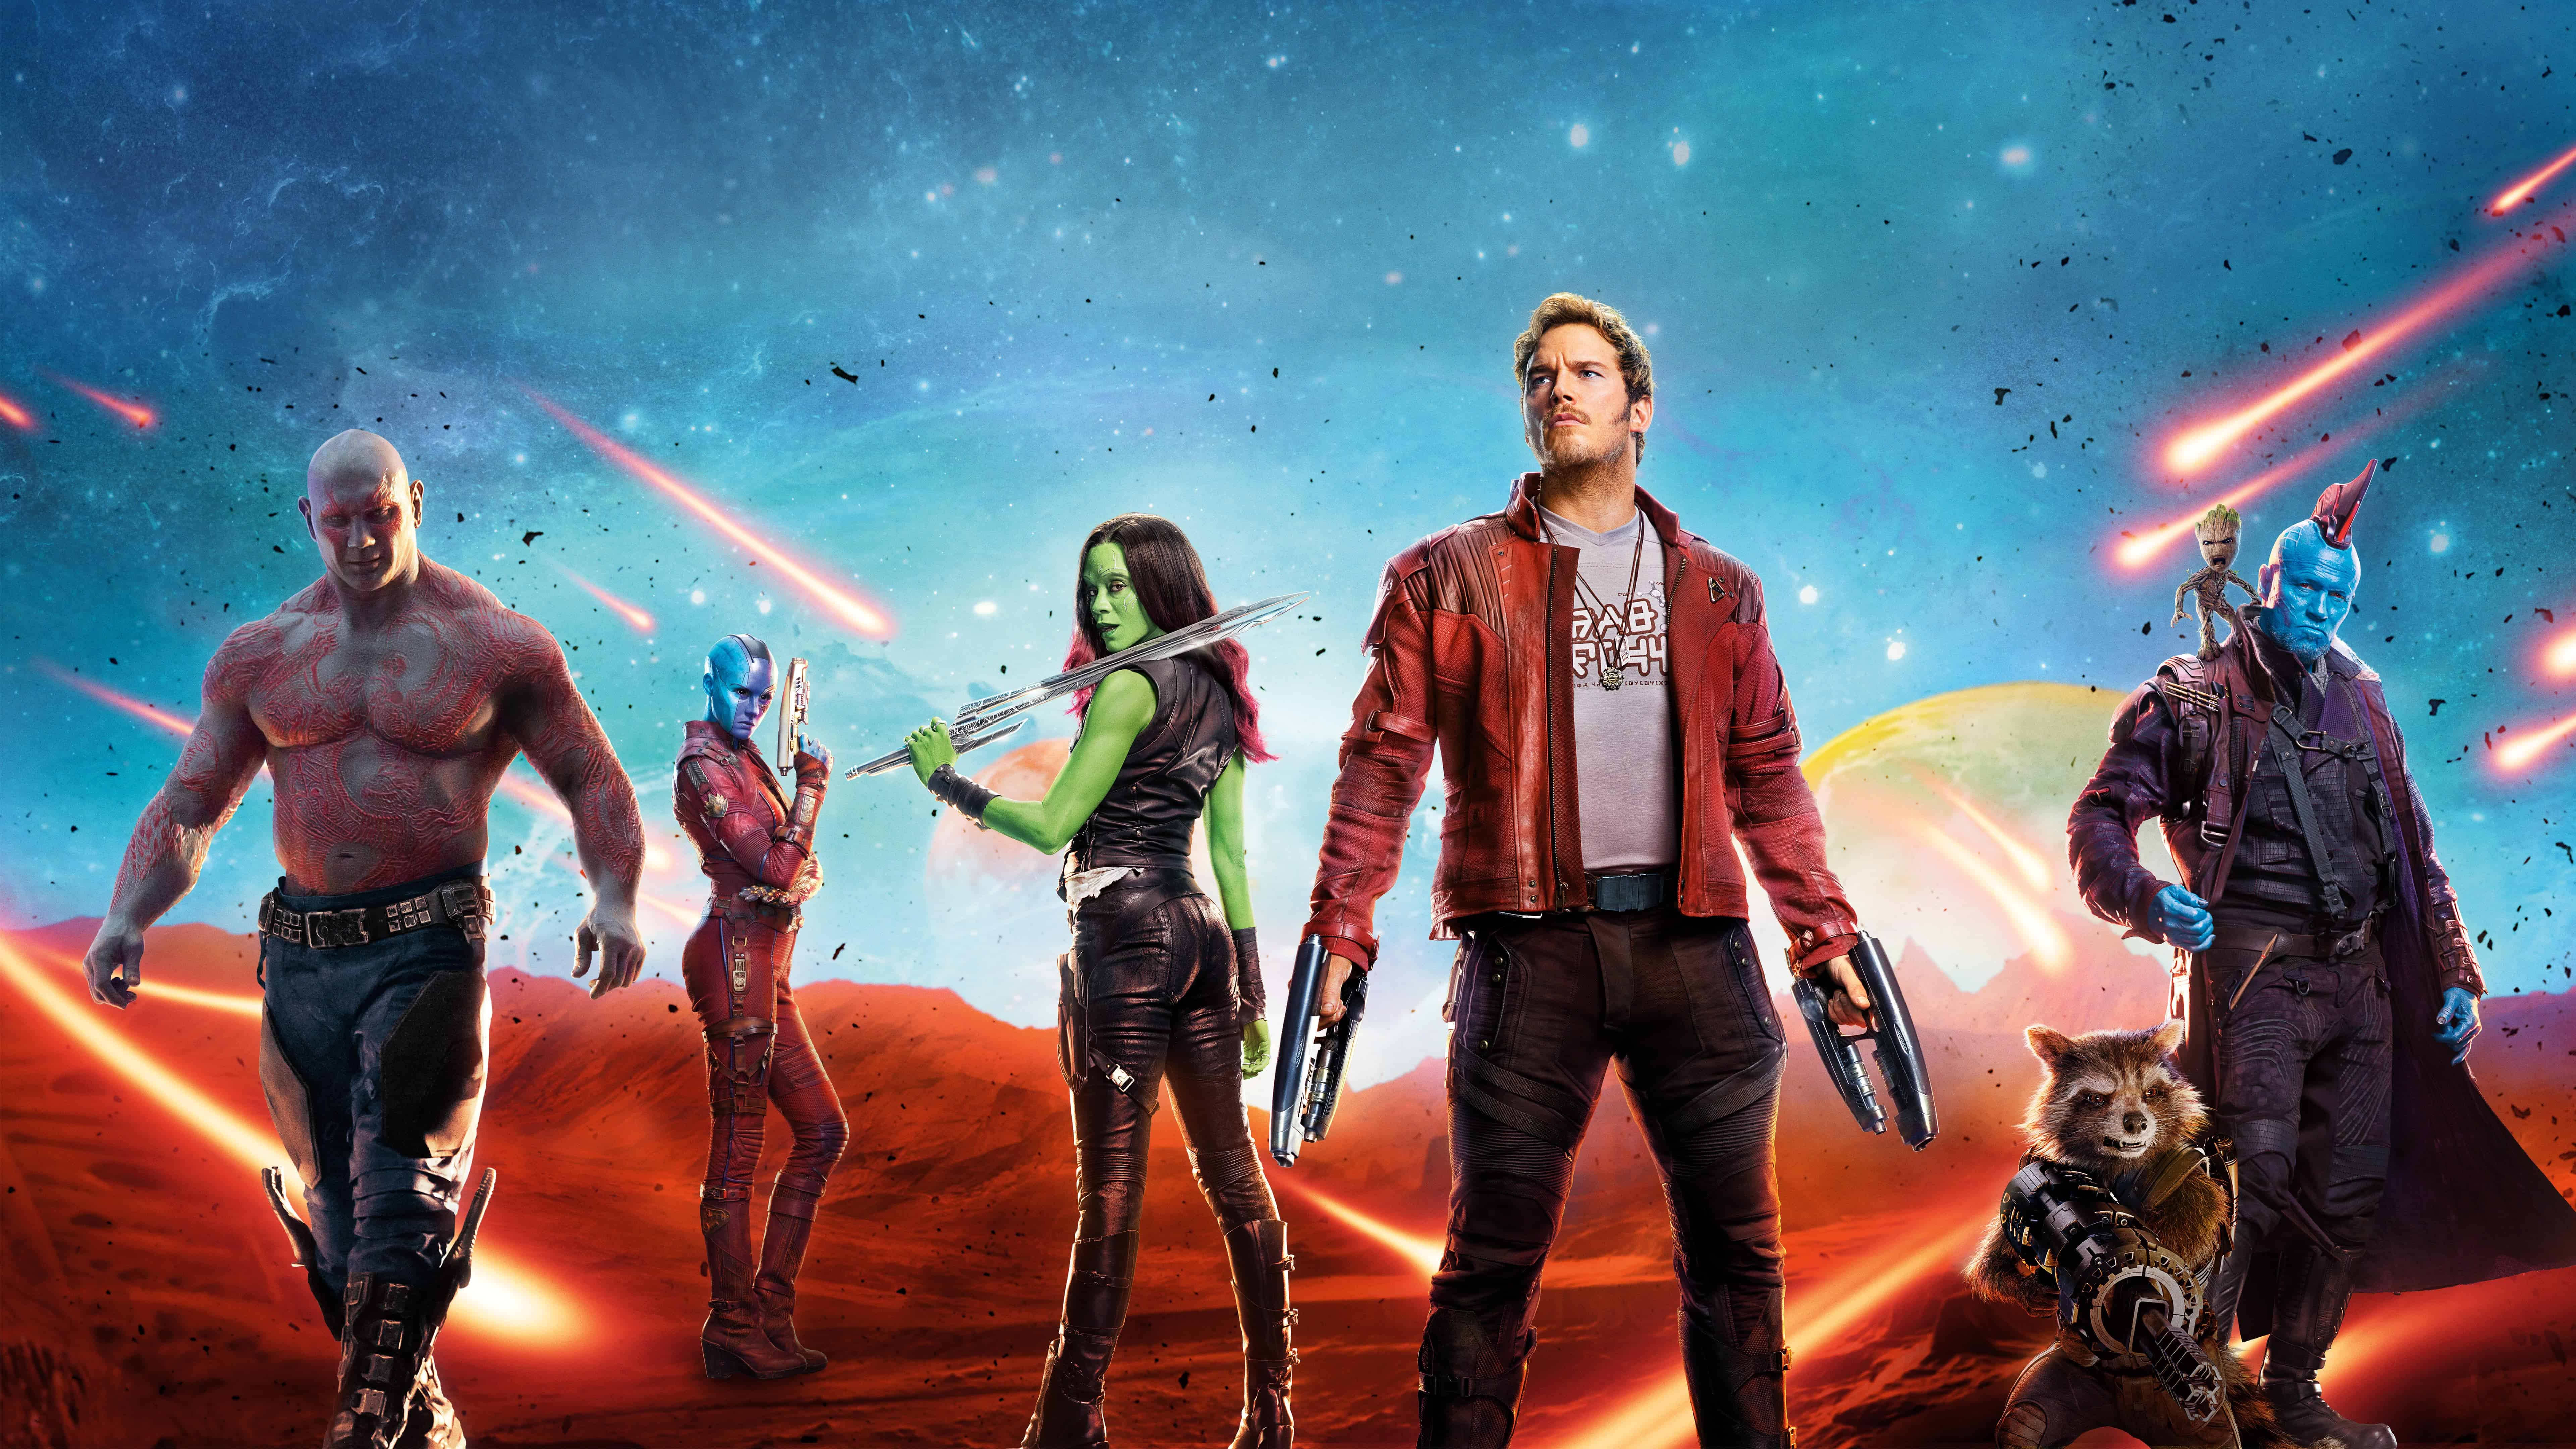 guardians of the galaxy vol 2 2017 uhd 8k wallpaper